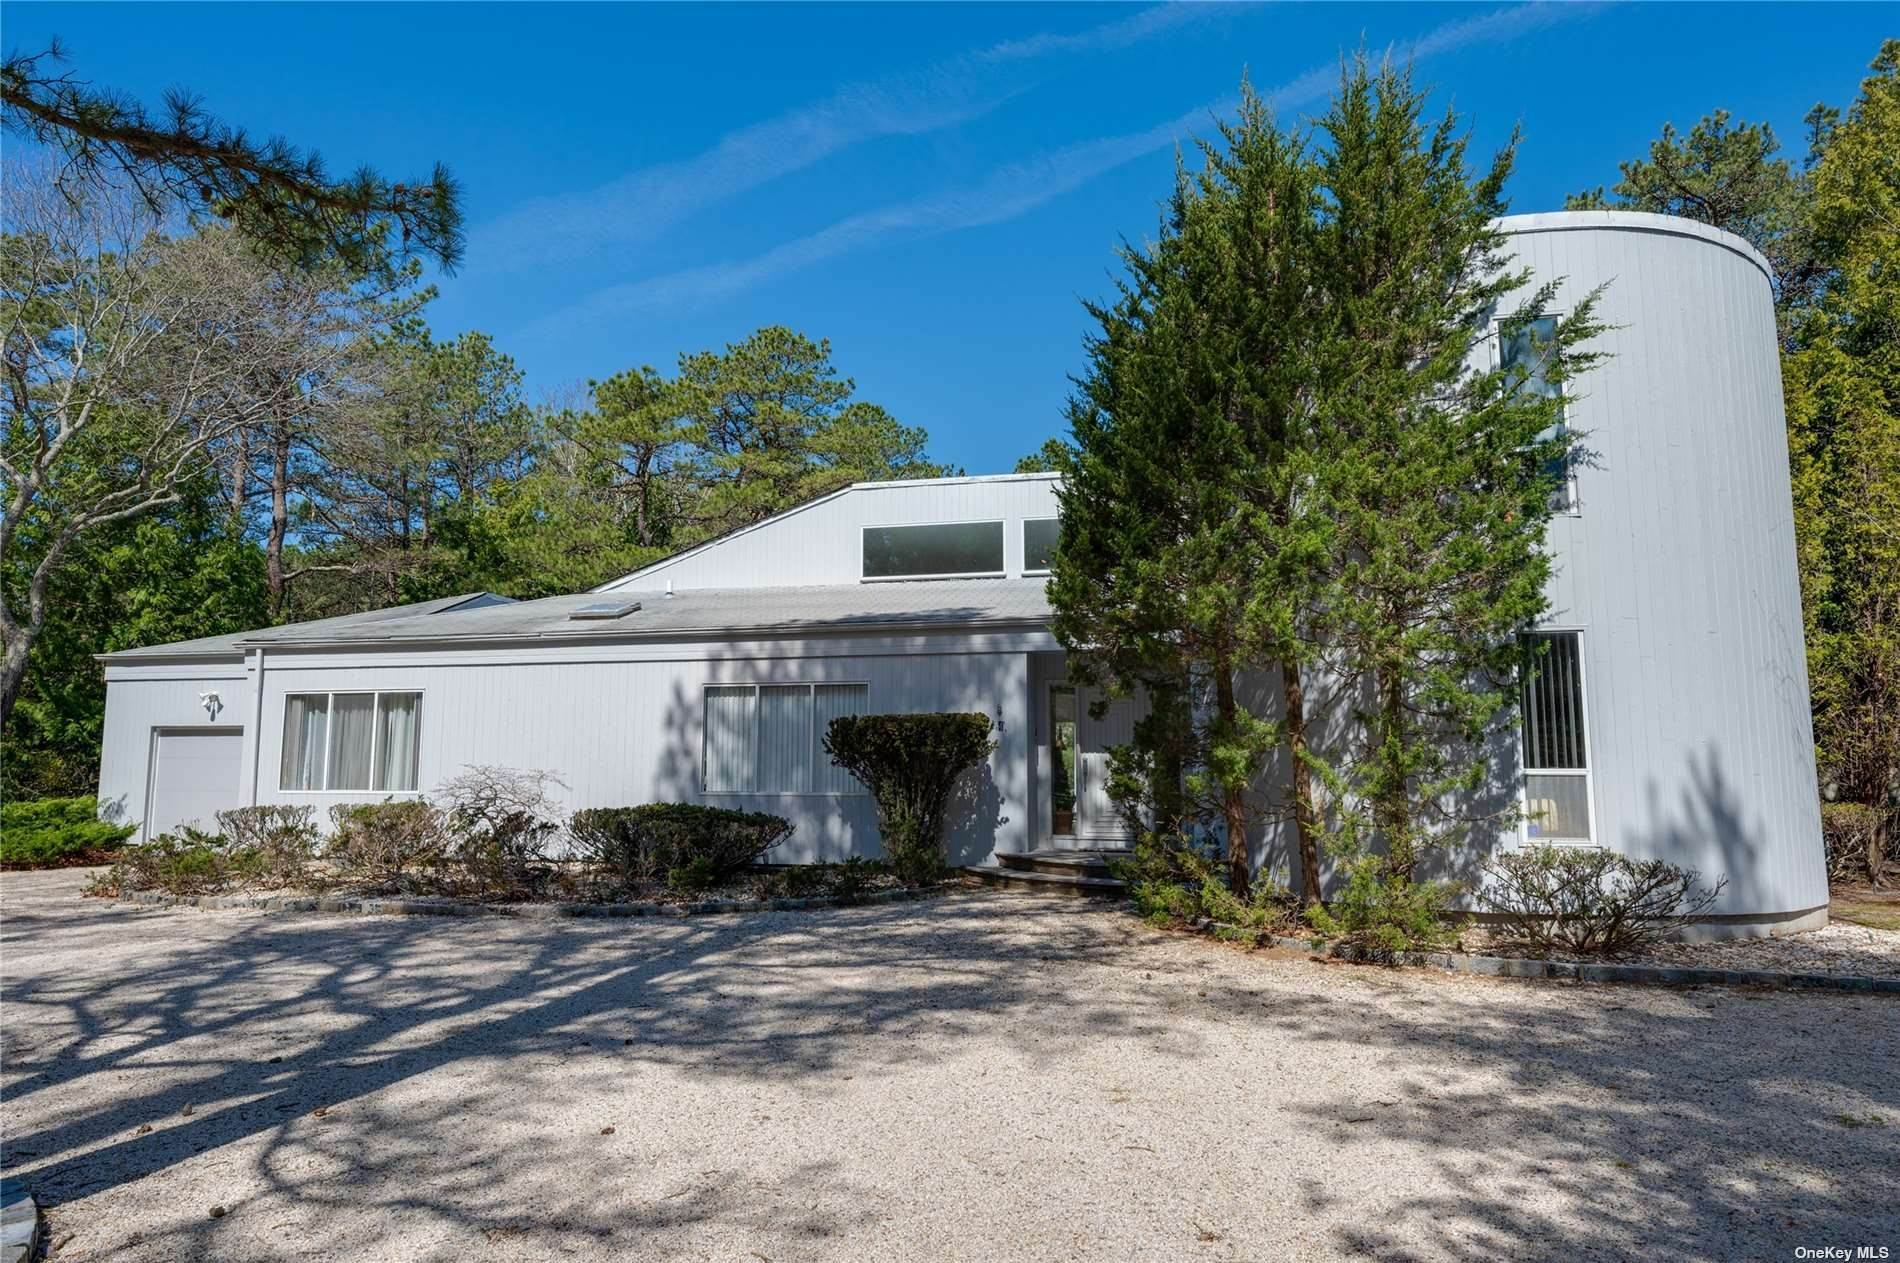 住宅租賃 在 4 Eagle Close East Quogue, 纽约 11942 美國